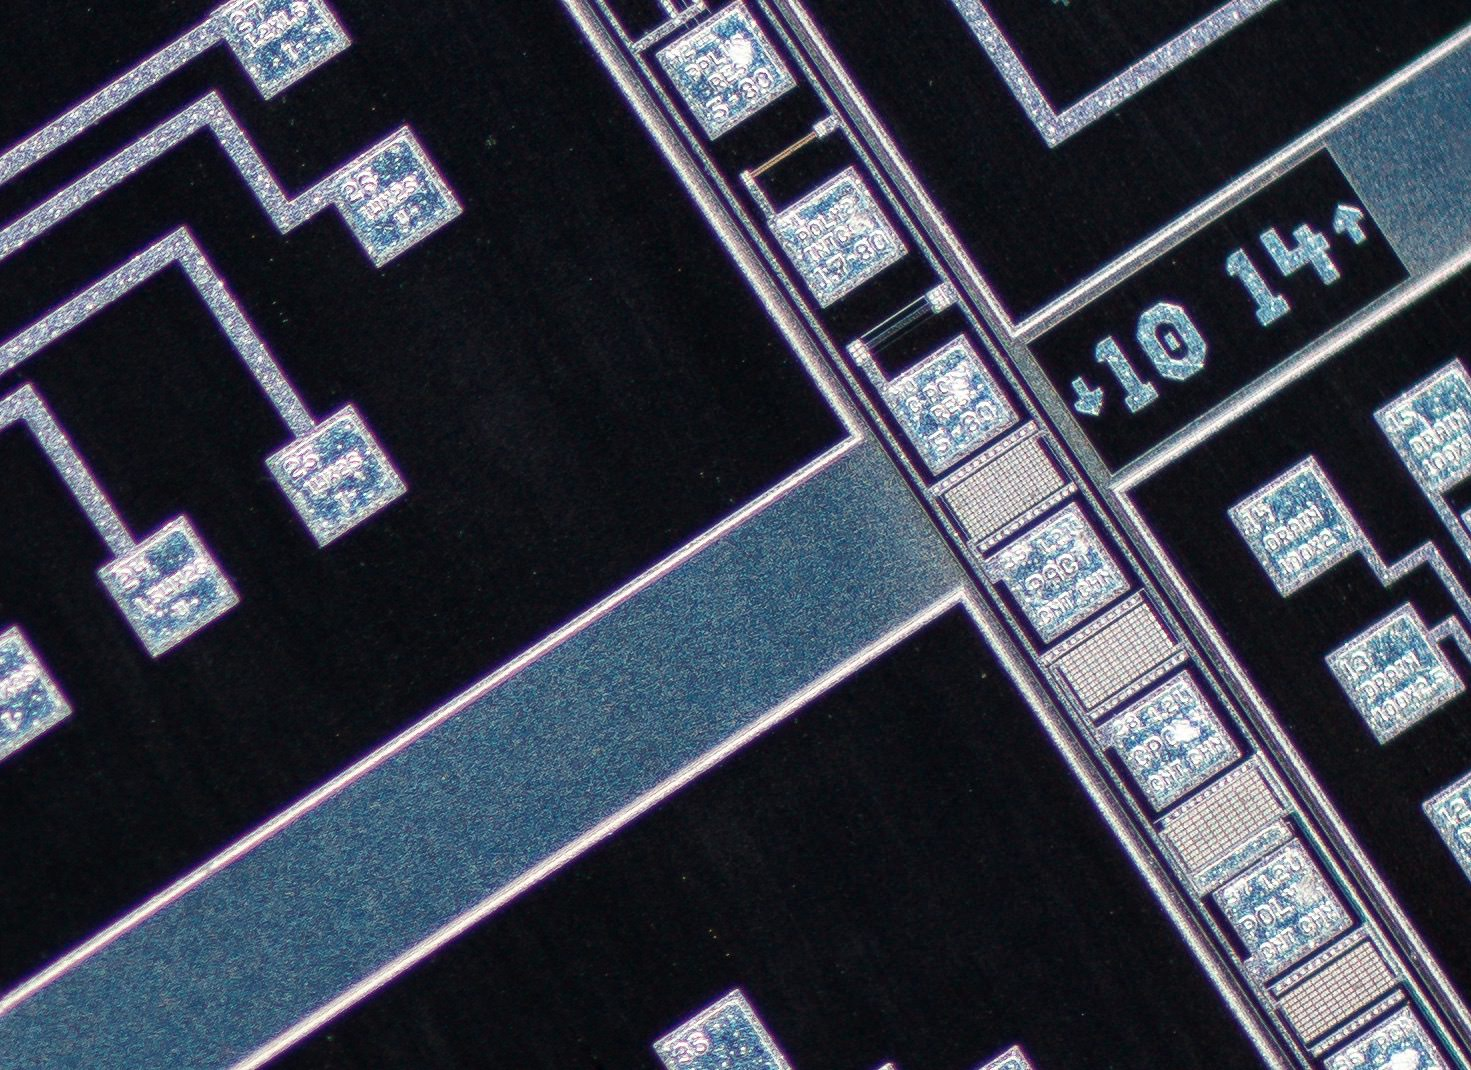 Nikon CFI Super Fluor 4X/0.20 ∞/- Microscope Objective 100% actual pixel view corner crop. Clicking on an image will open a larger version.